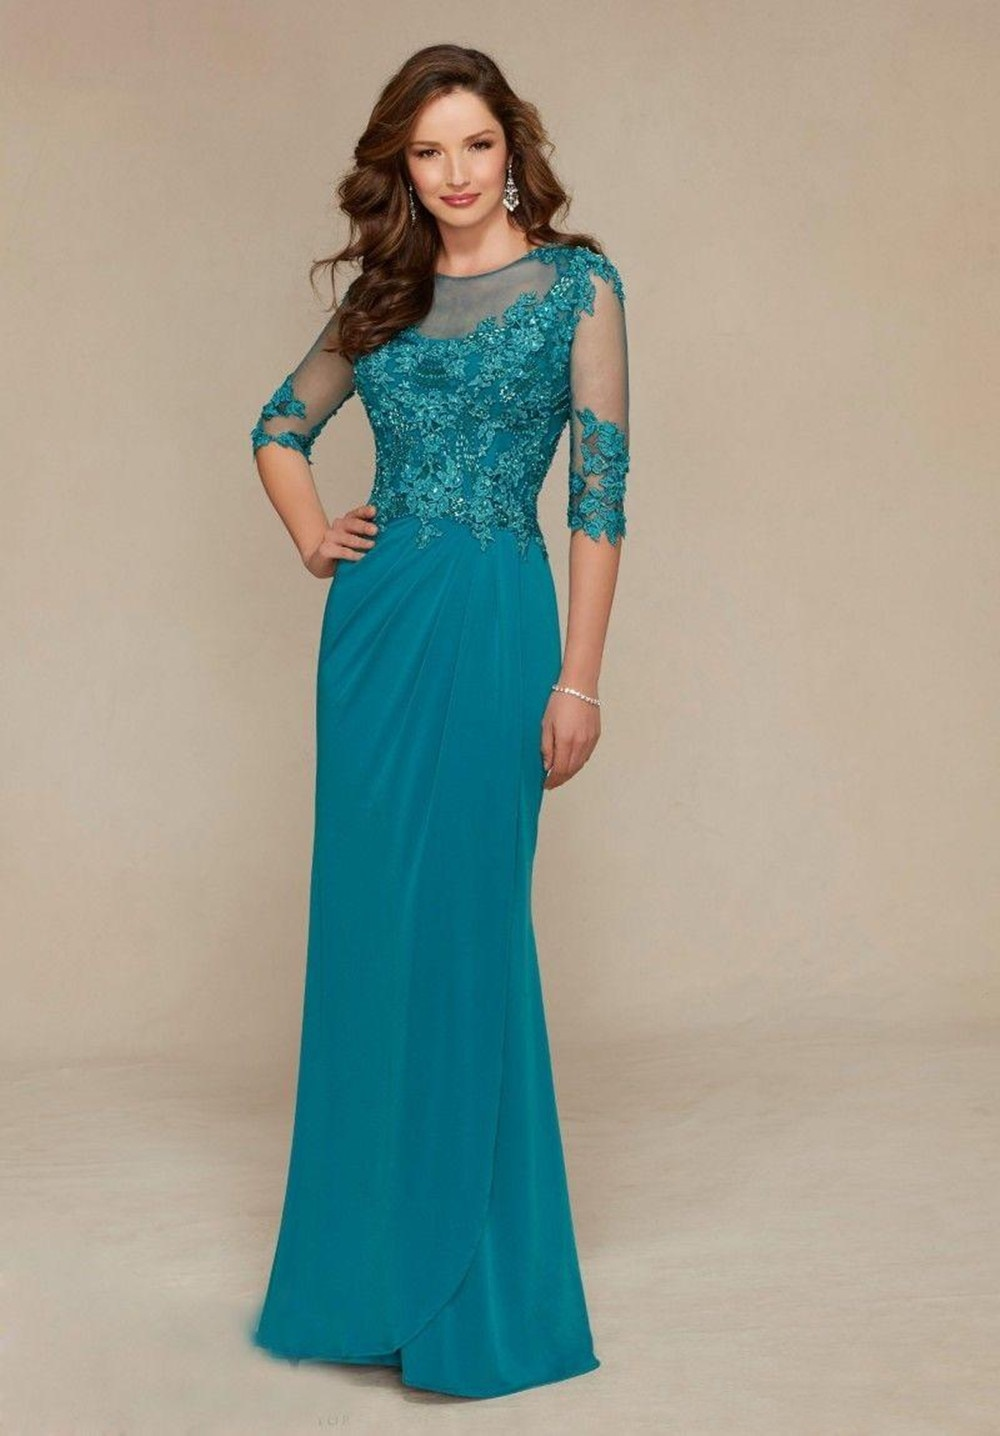 Floor Length Mother Of the Bride Dresses 3/4 Long Sleeve Lace Beaded Wedding Guest Dresses Jewel Nec